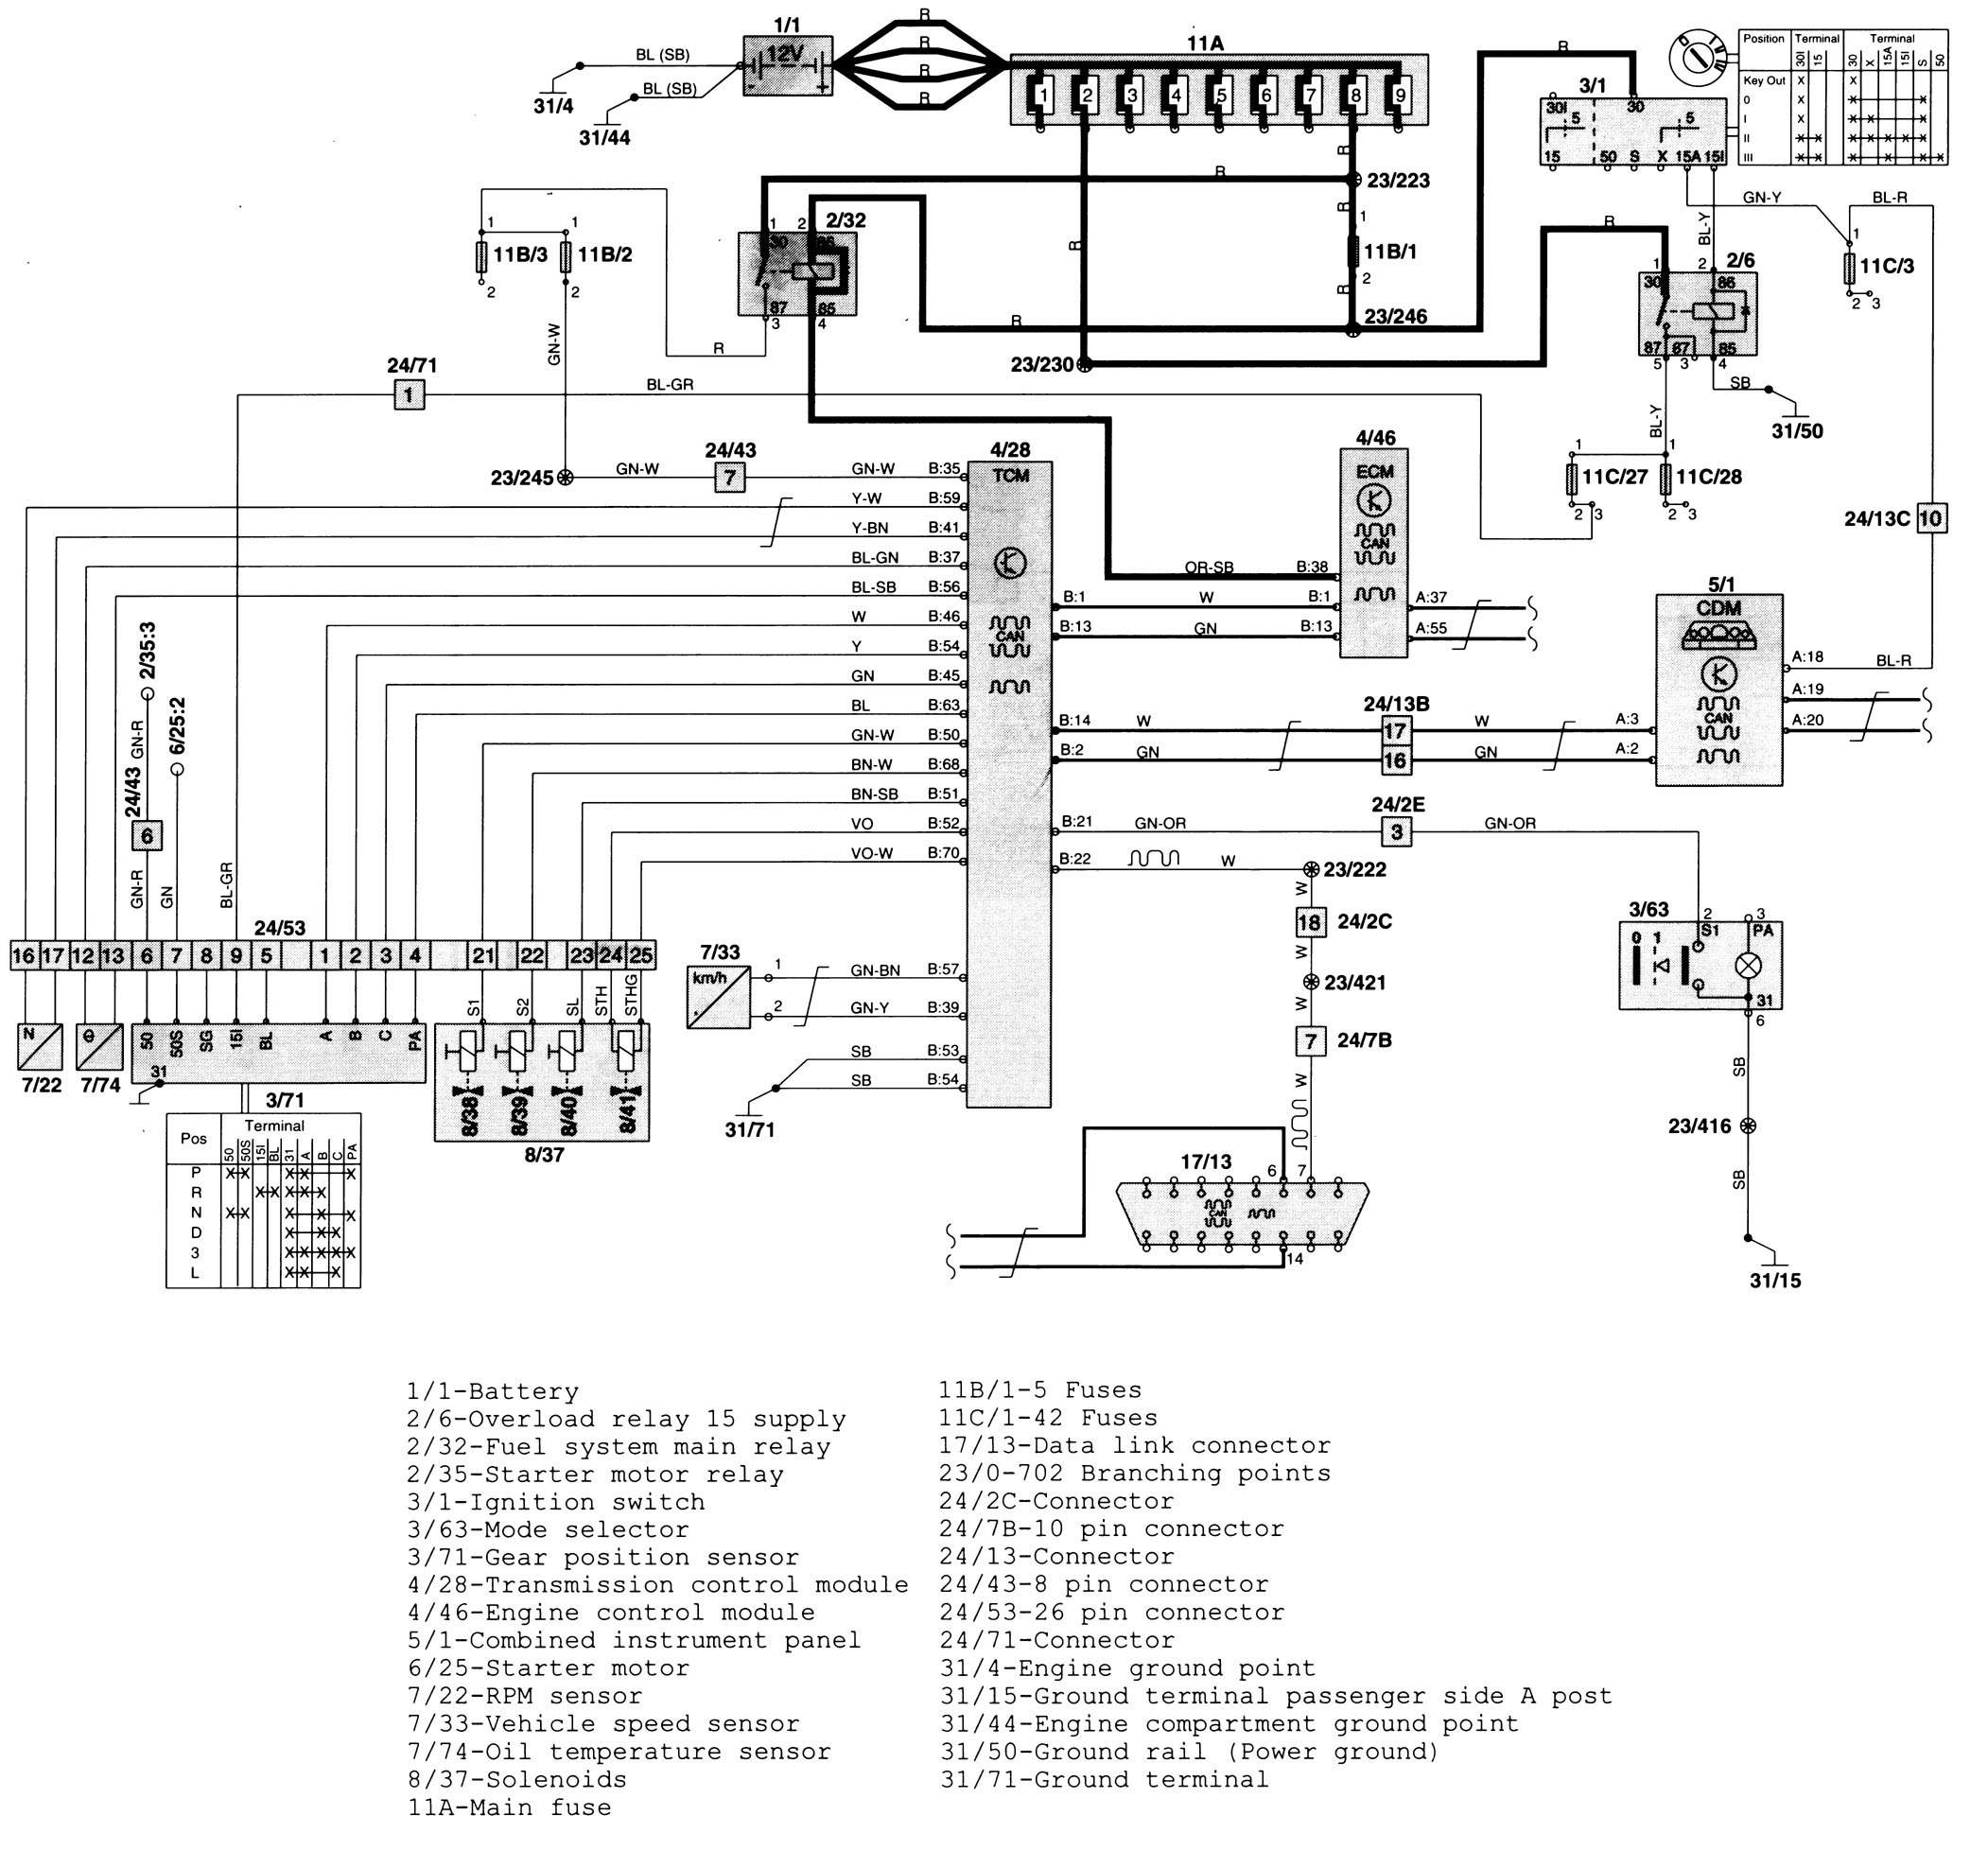 70 mustang engine wiring diagram  | 3727 x 2261